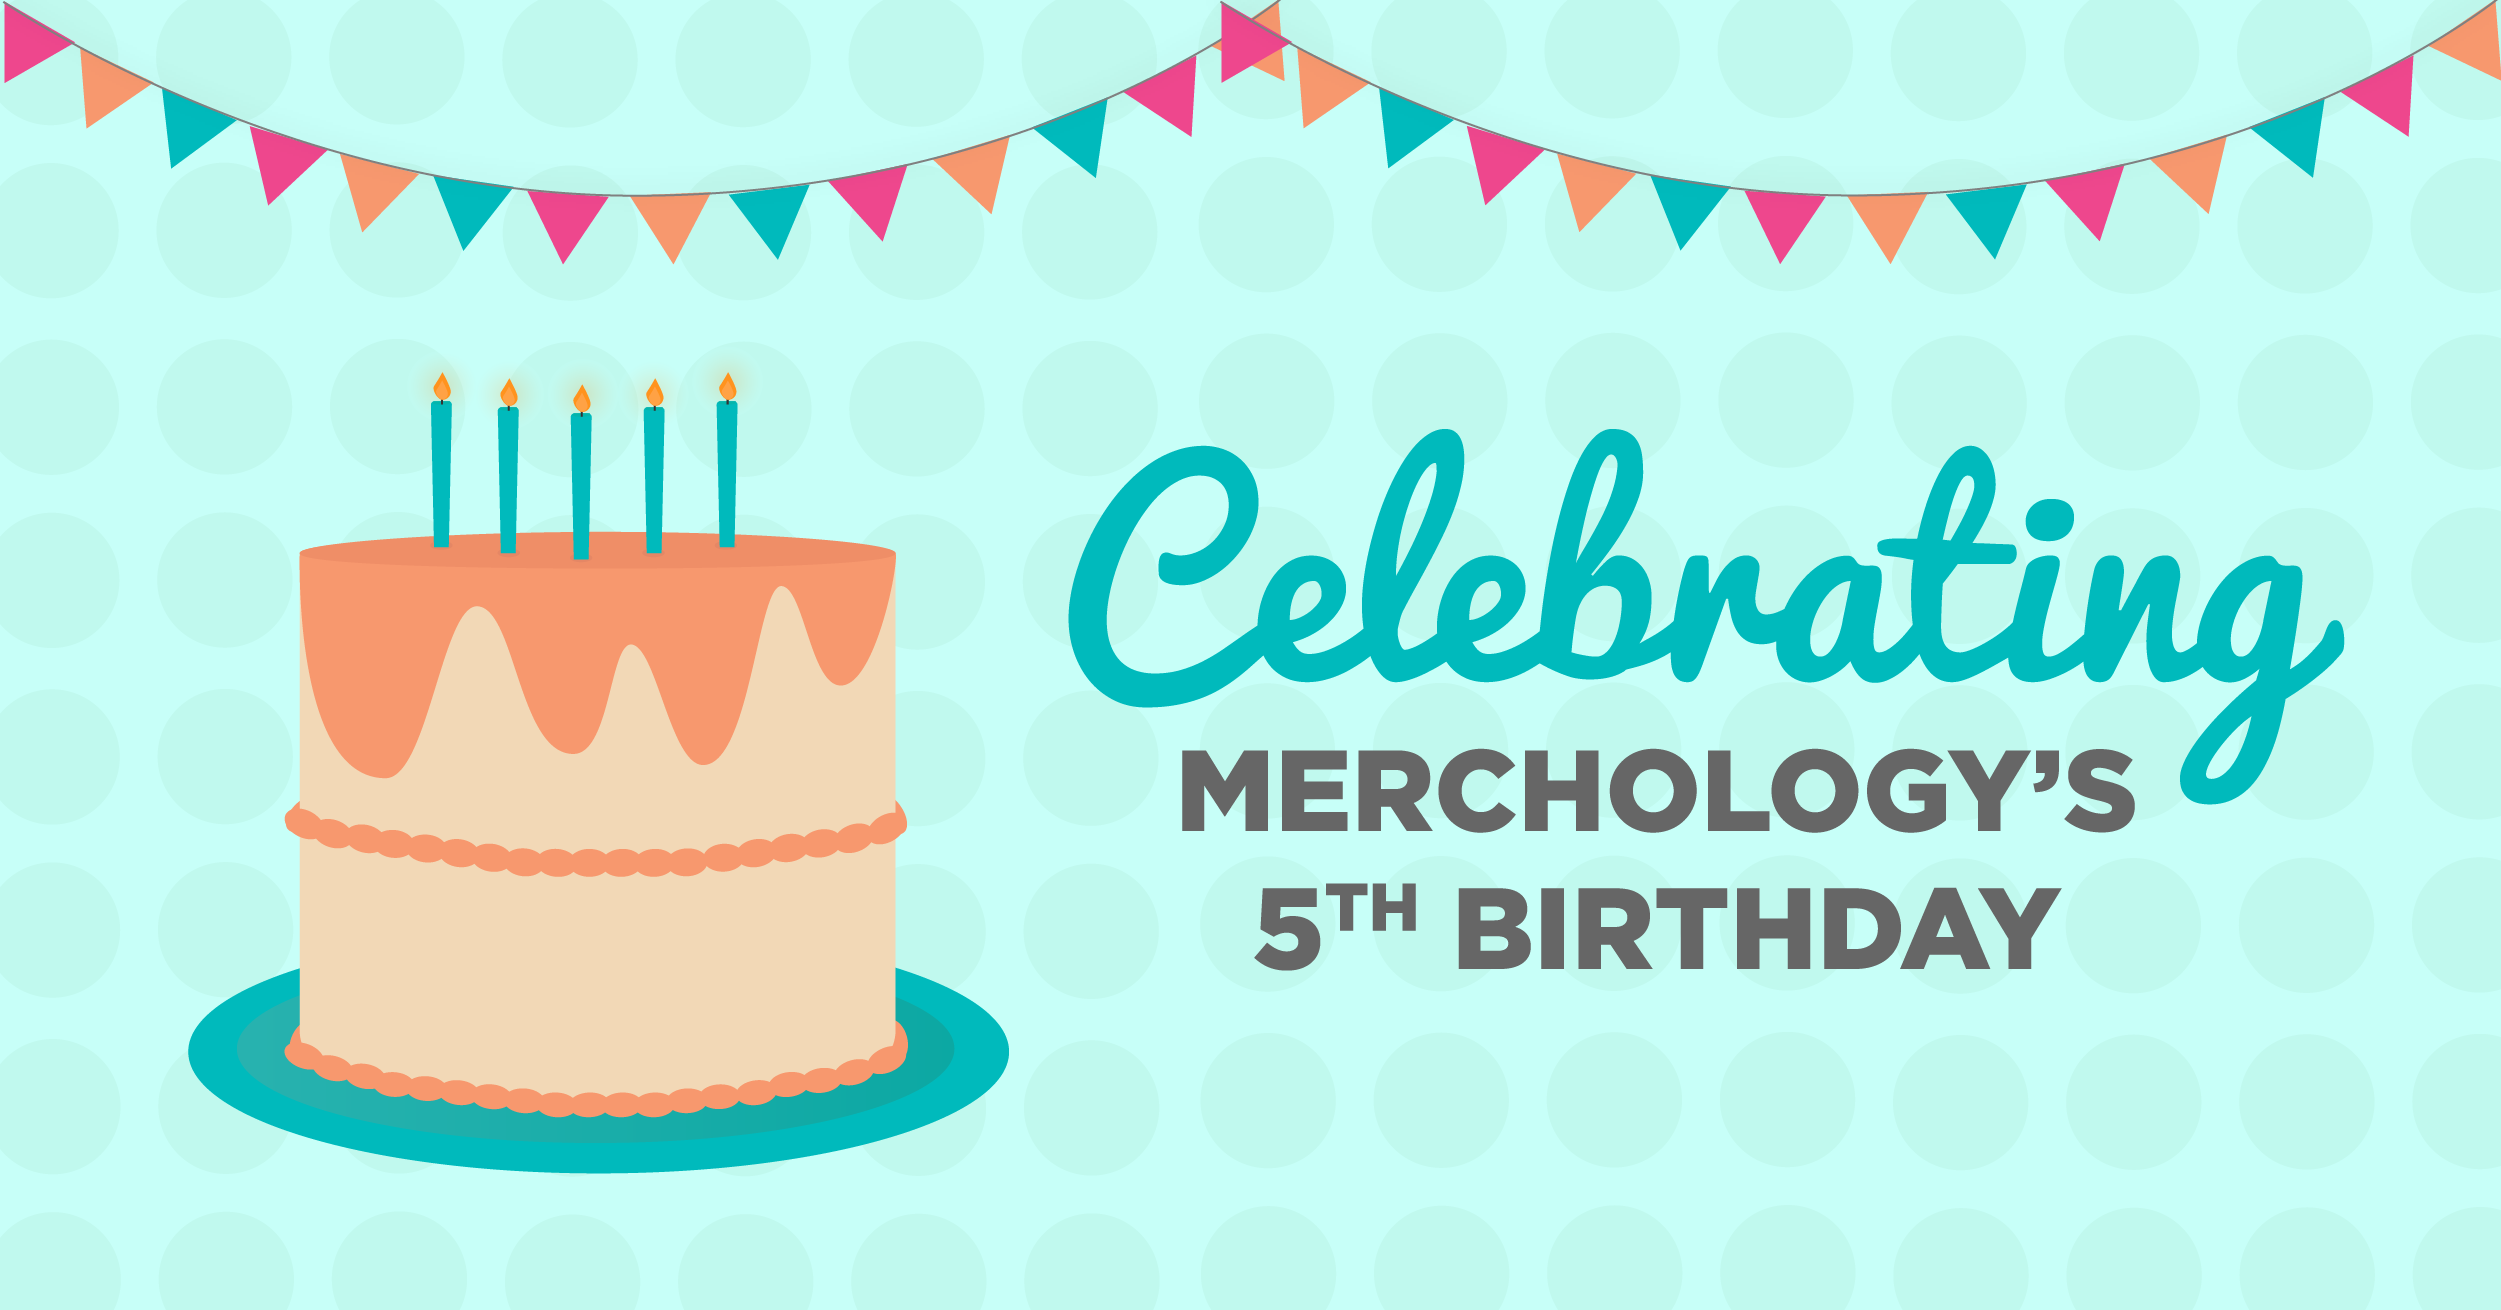 Merchology Celebrates Our 5th Birthday